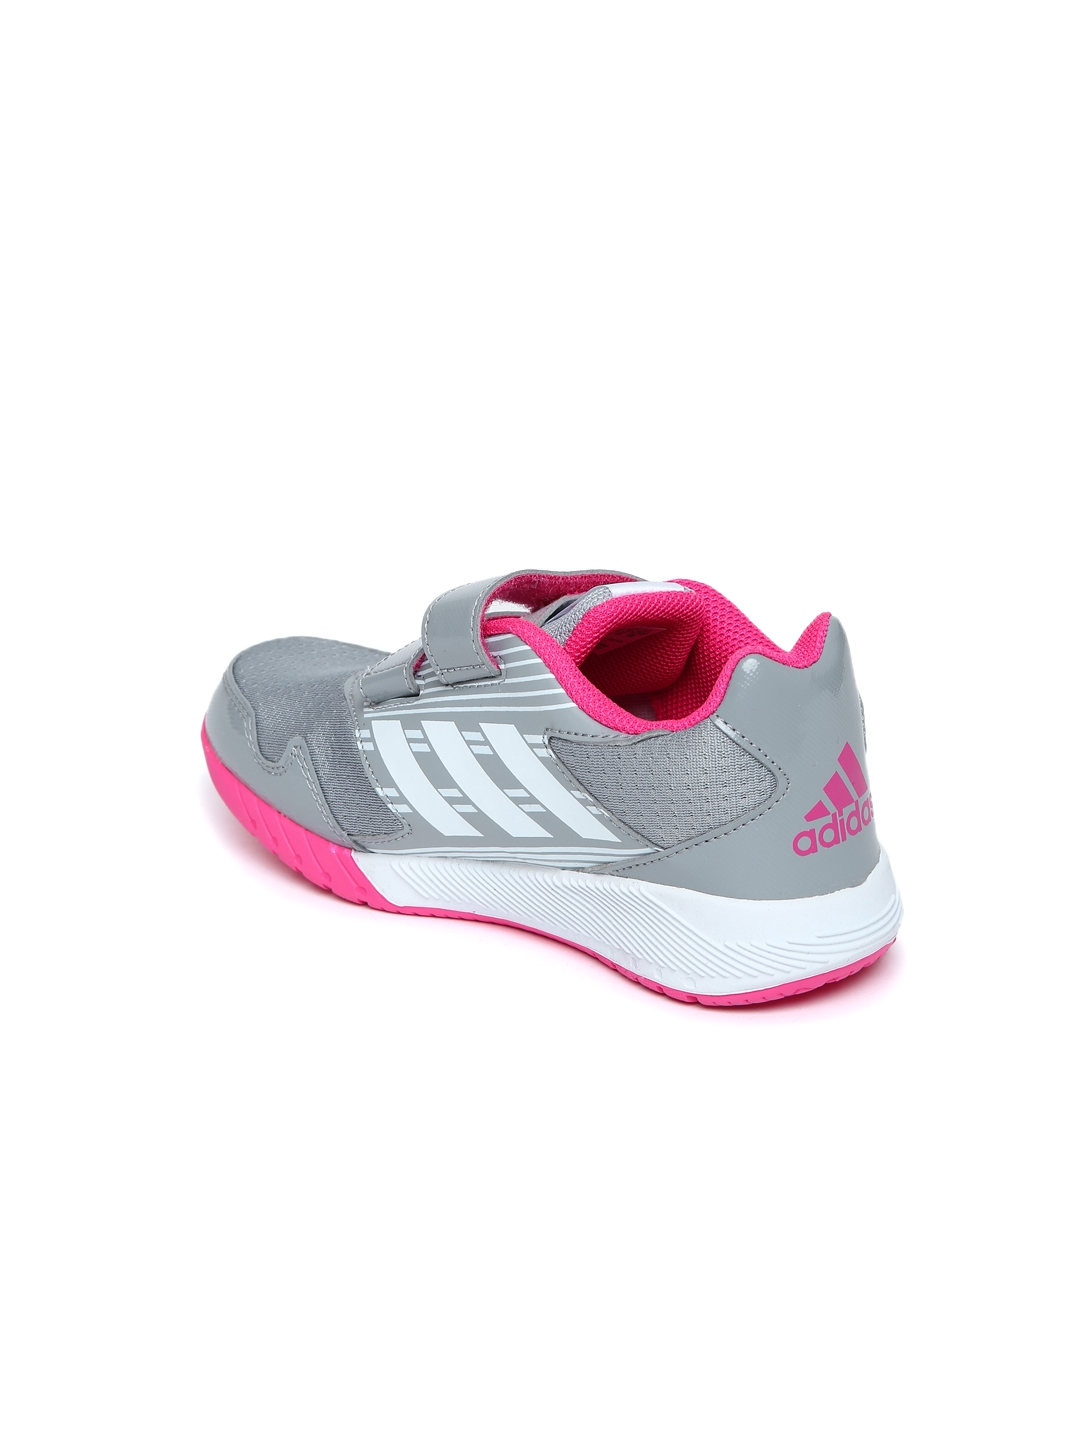 c09d3e62af9dbd Buy ADIDAS Kids Grey Altarun CF K Running Shoes - Sports Shoes for ...